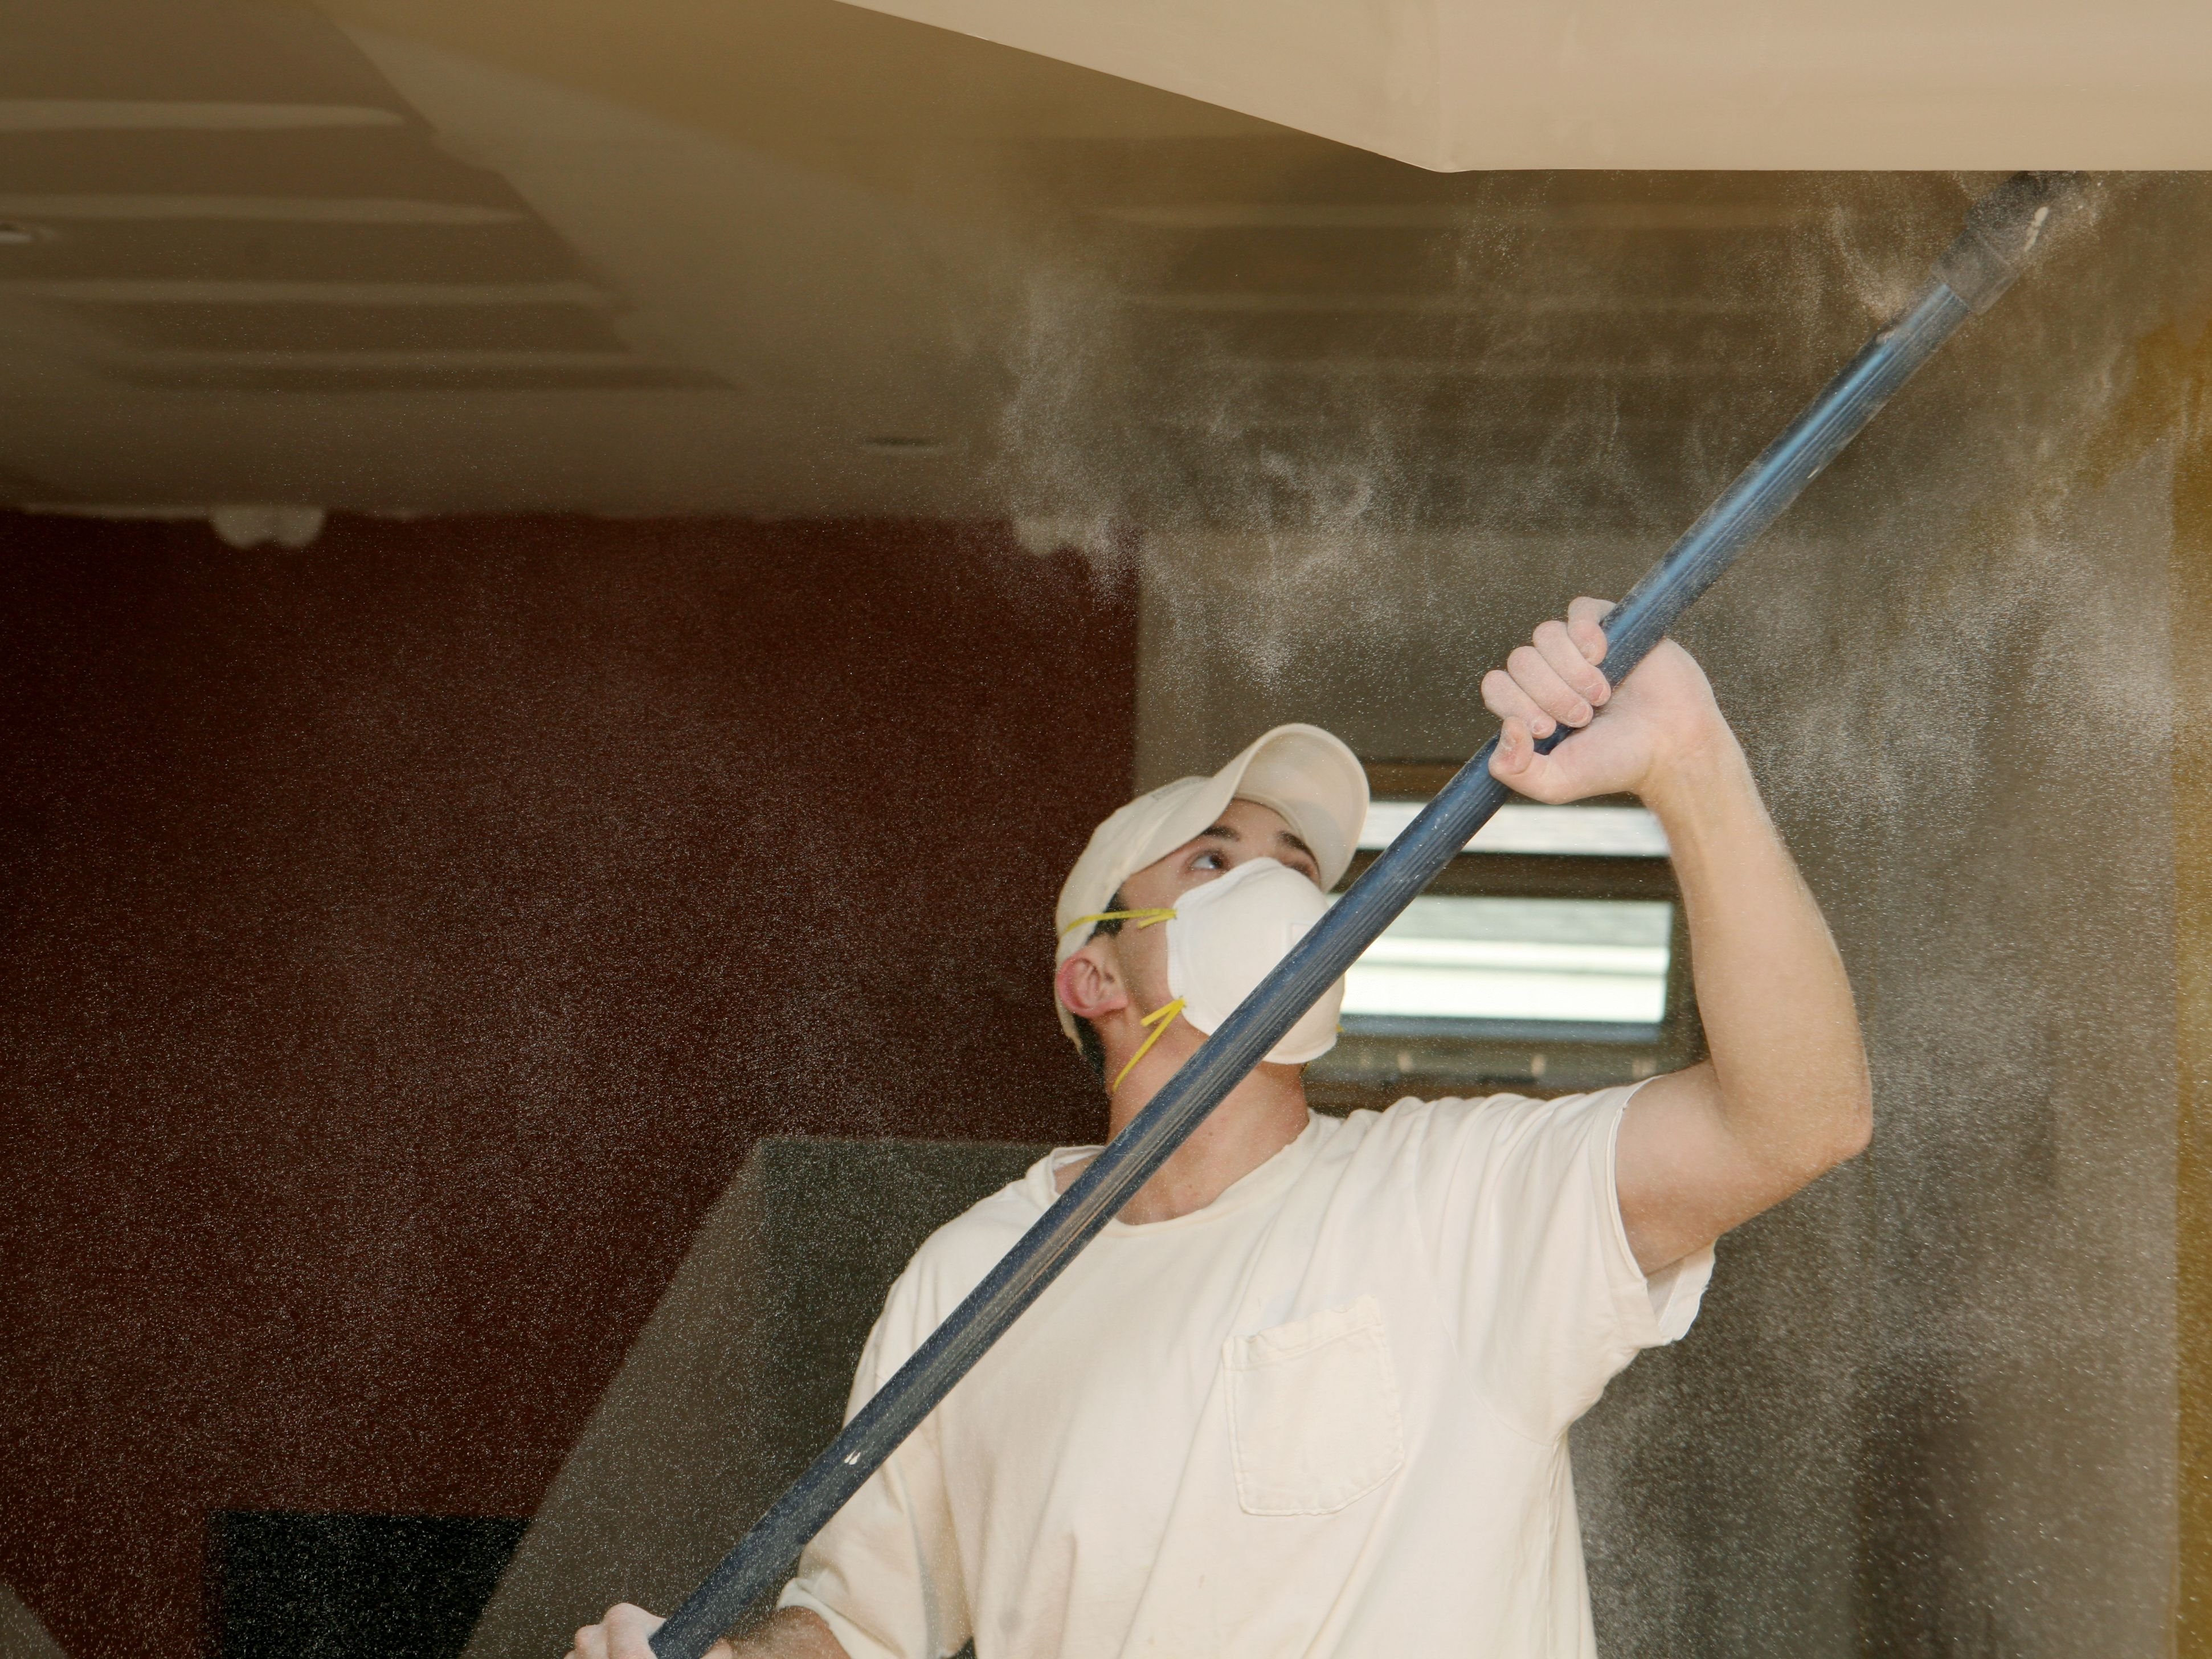 Reducing Drywall Dust During Your Home